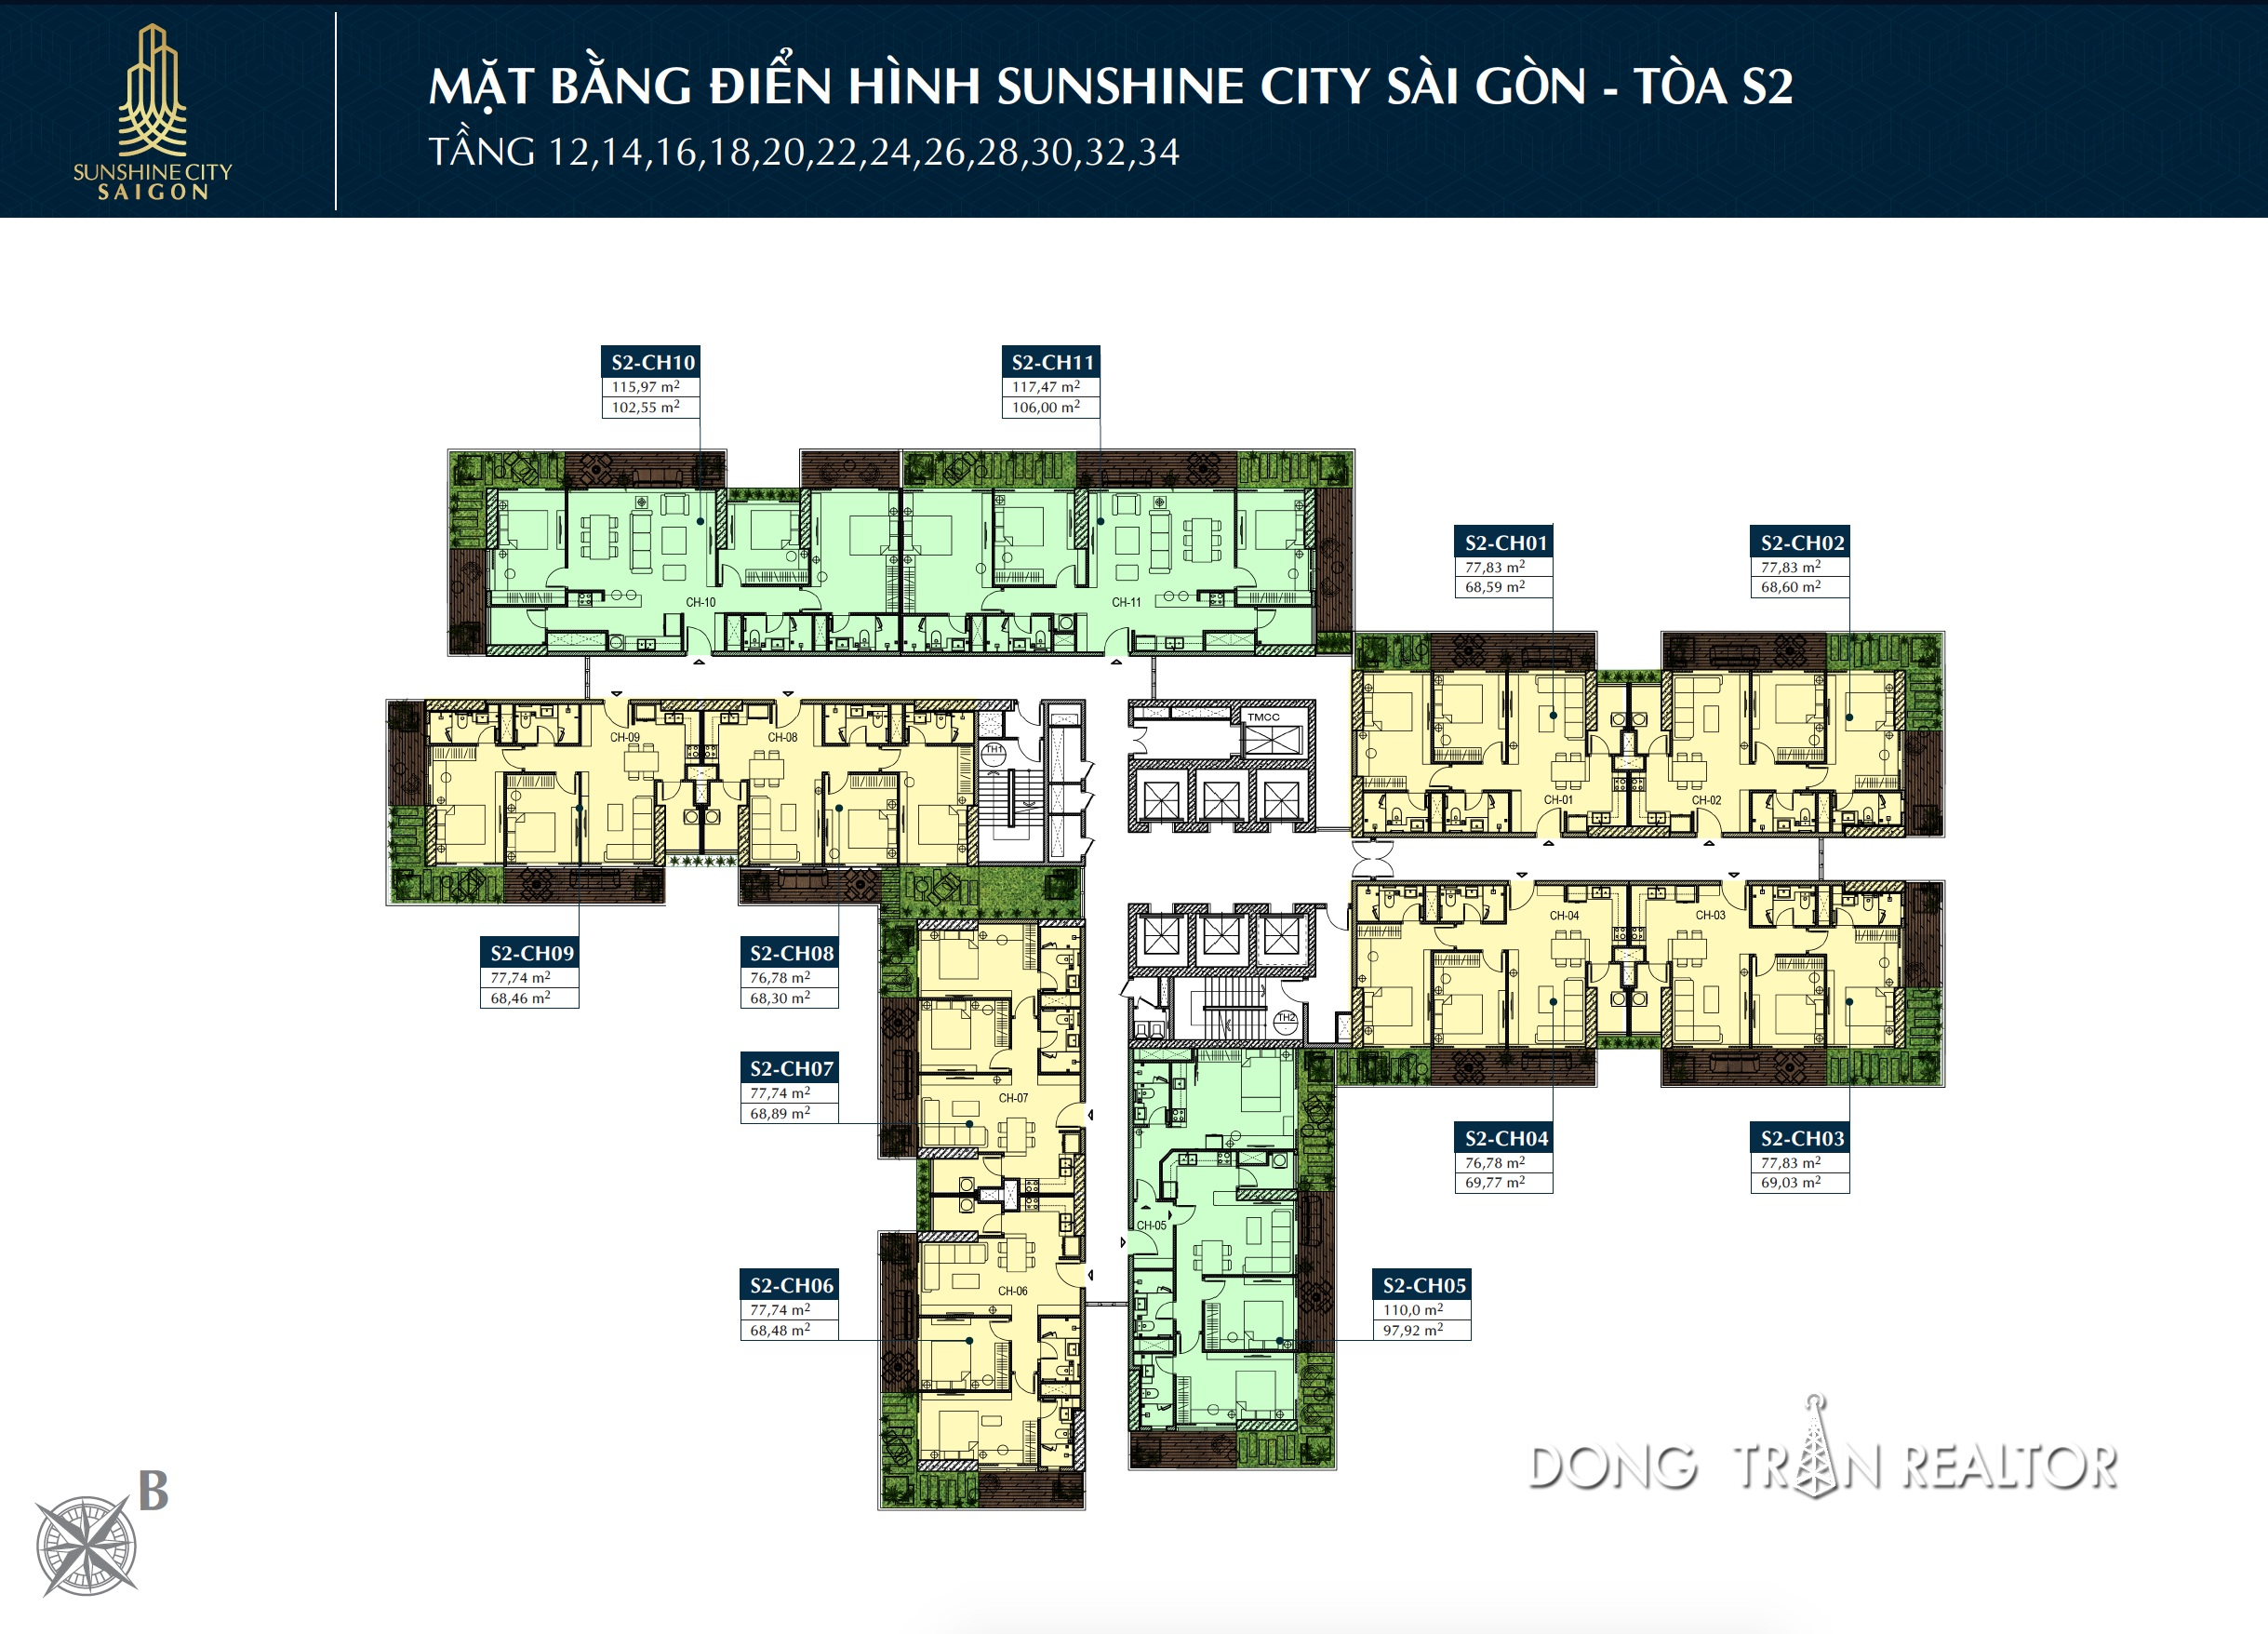 MAT BANG SUNSHINE CITY SAIGON